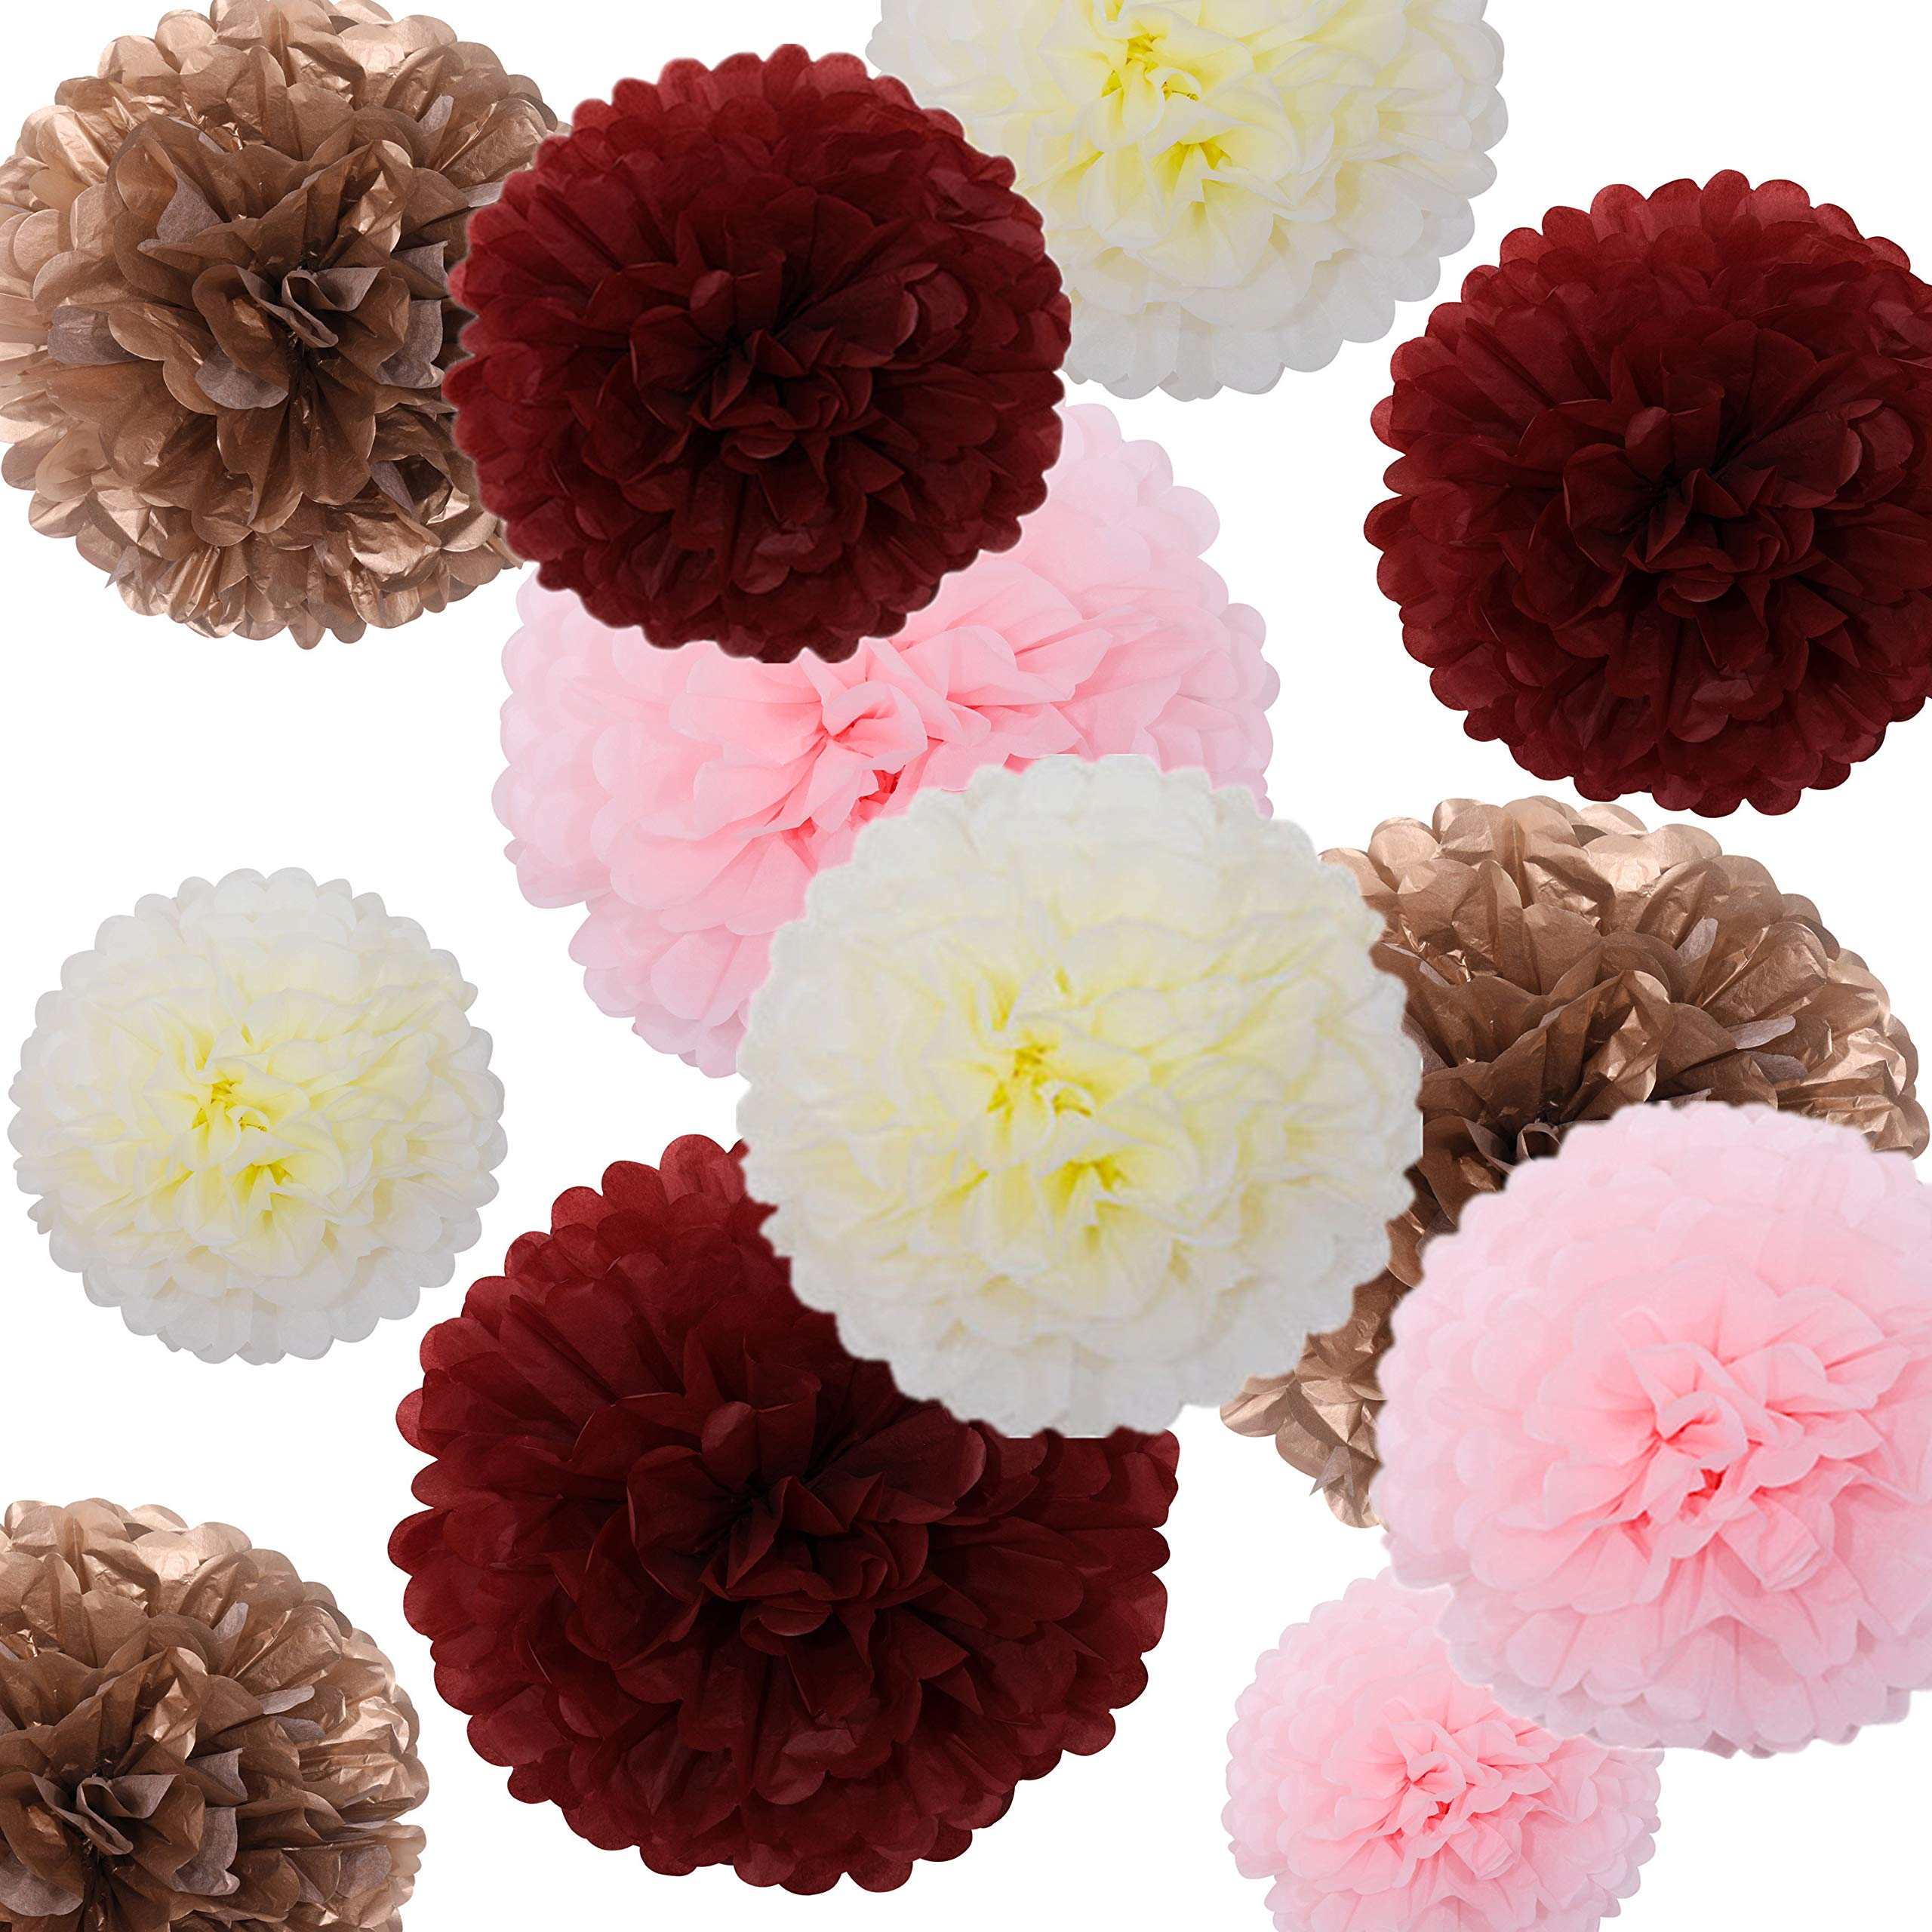 Fonder Mols 24pcs Tissue Paper Flowers - Burgundy and Rose Gold Party Decorations - Tissue Paper Pom Poms For Baby Shower, Wedding, Birthday - Paper Pom Pom Set by Fonder Mols